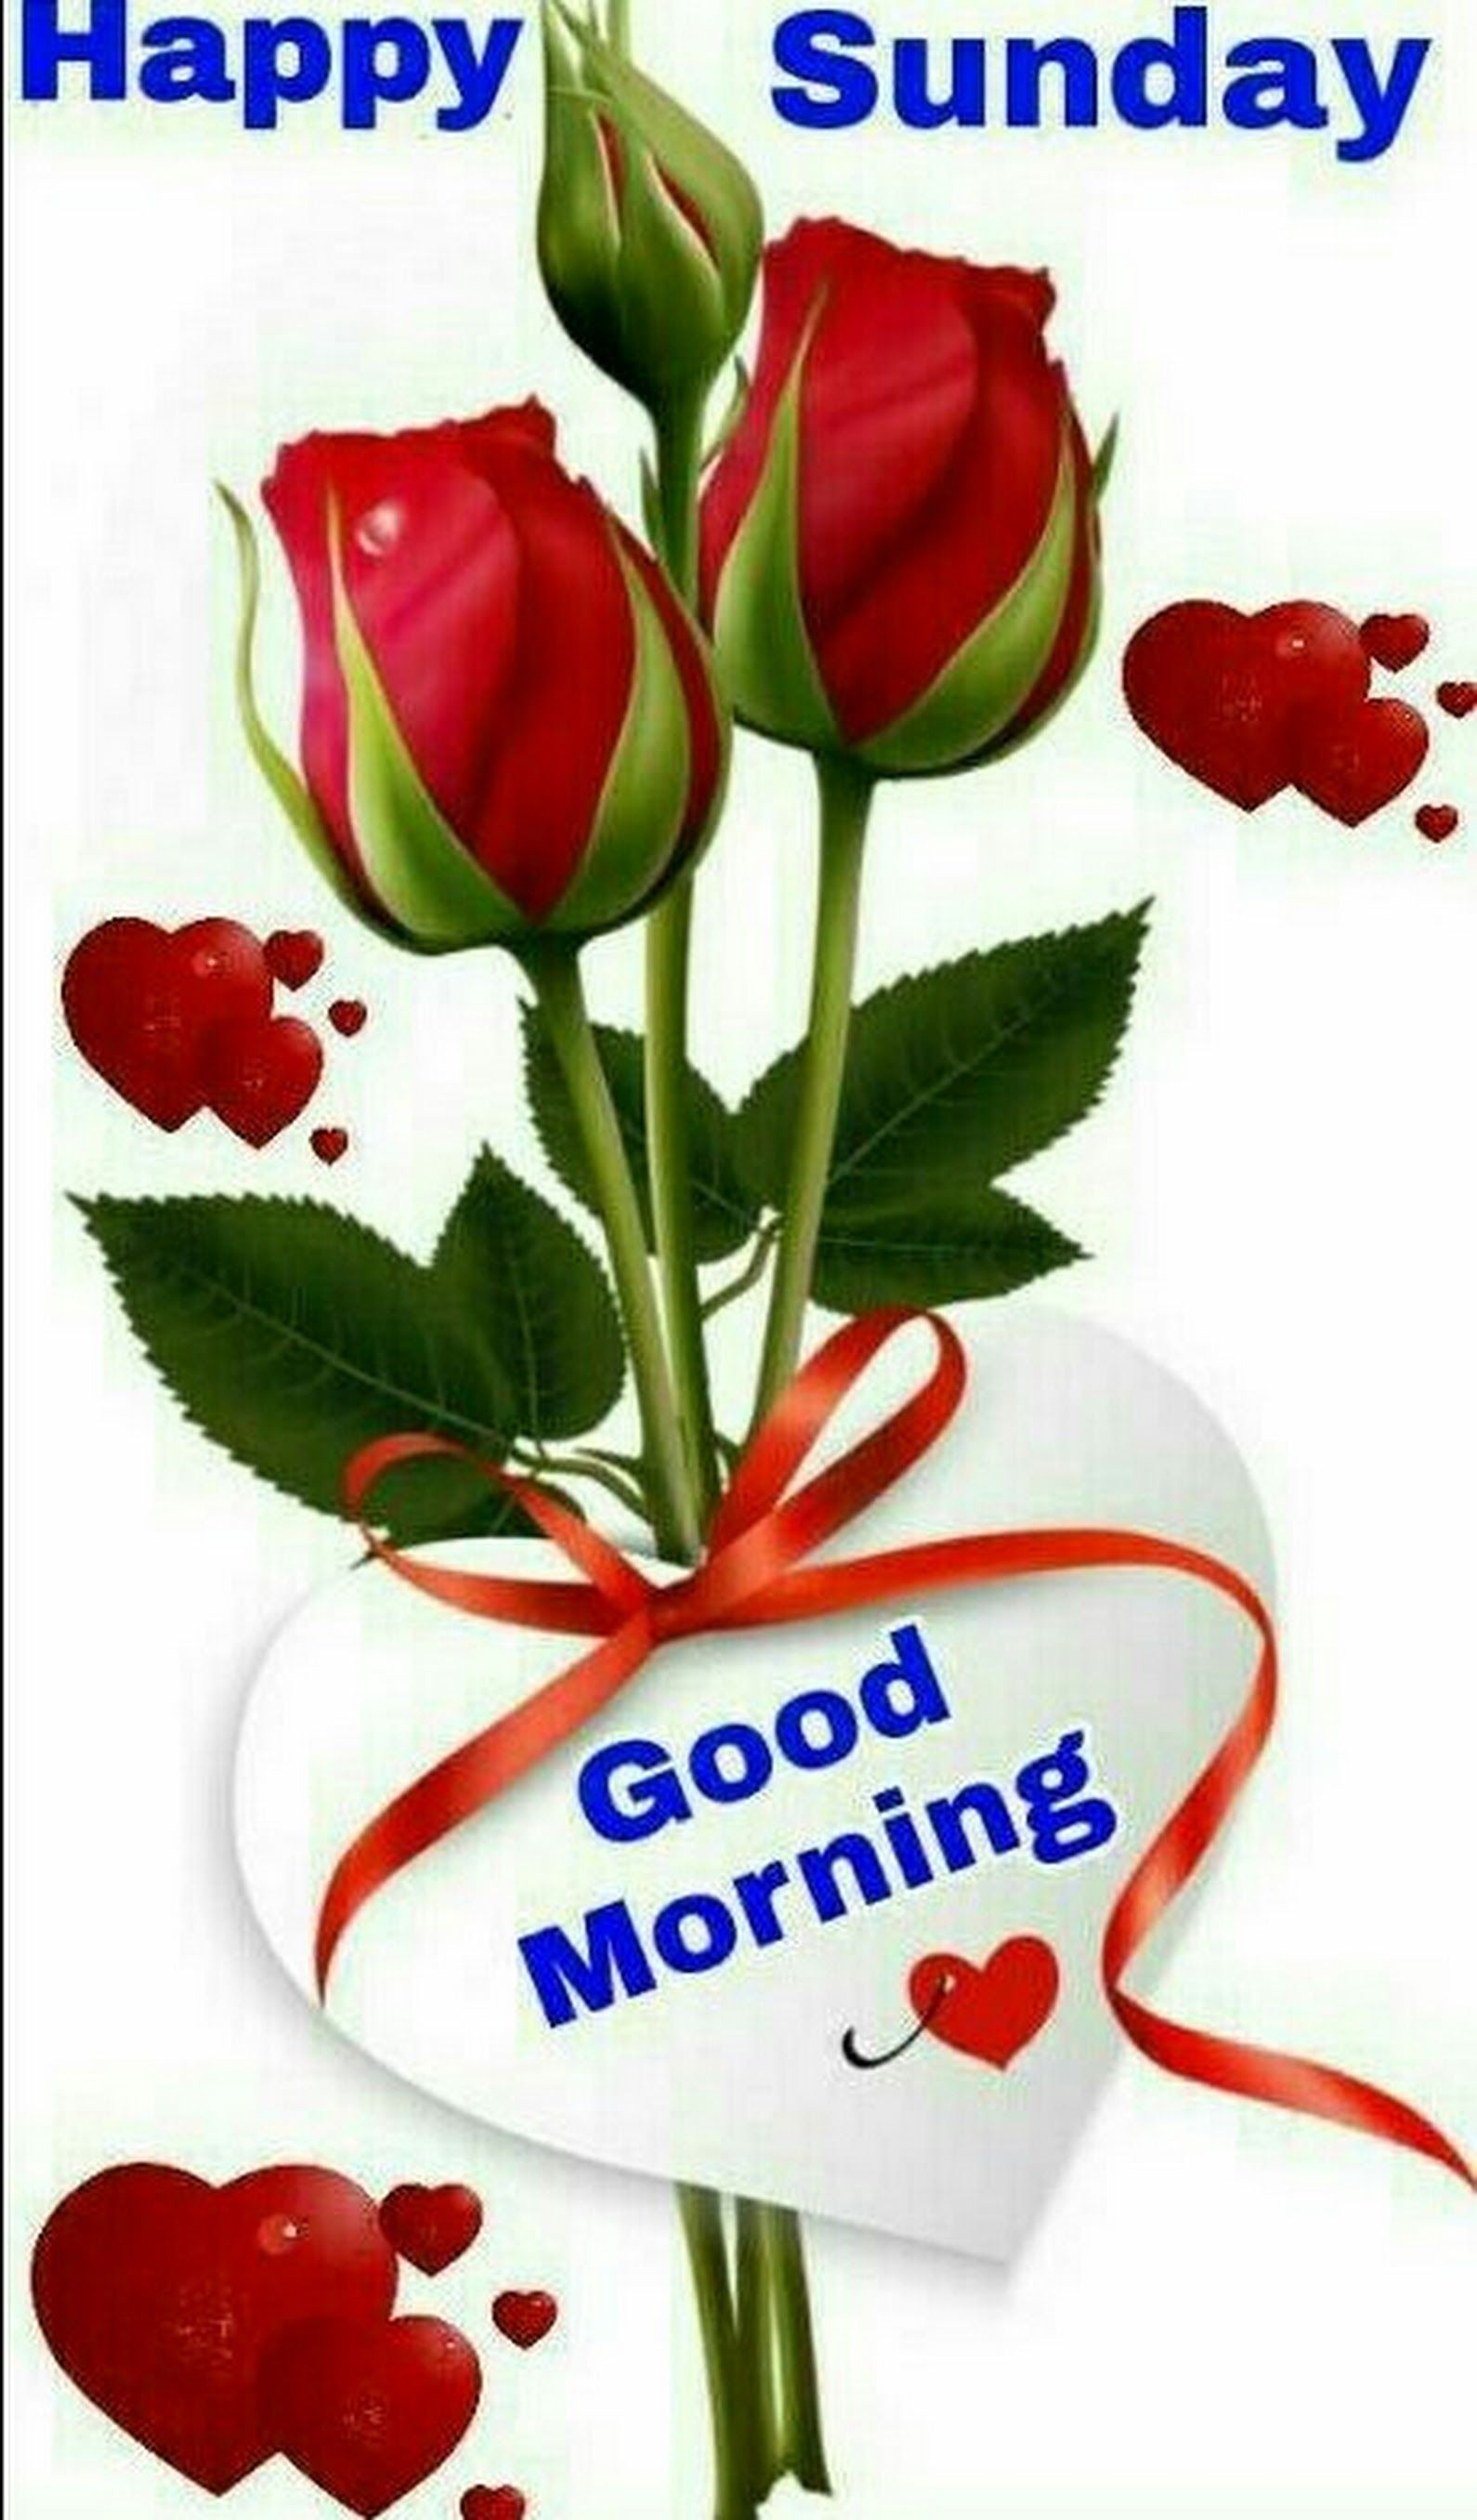 Good Morning Friend S Have A Happy Sunday Krishna Roy Google